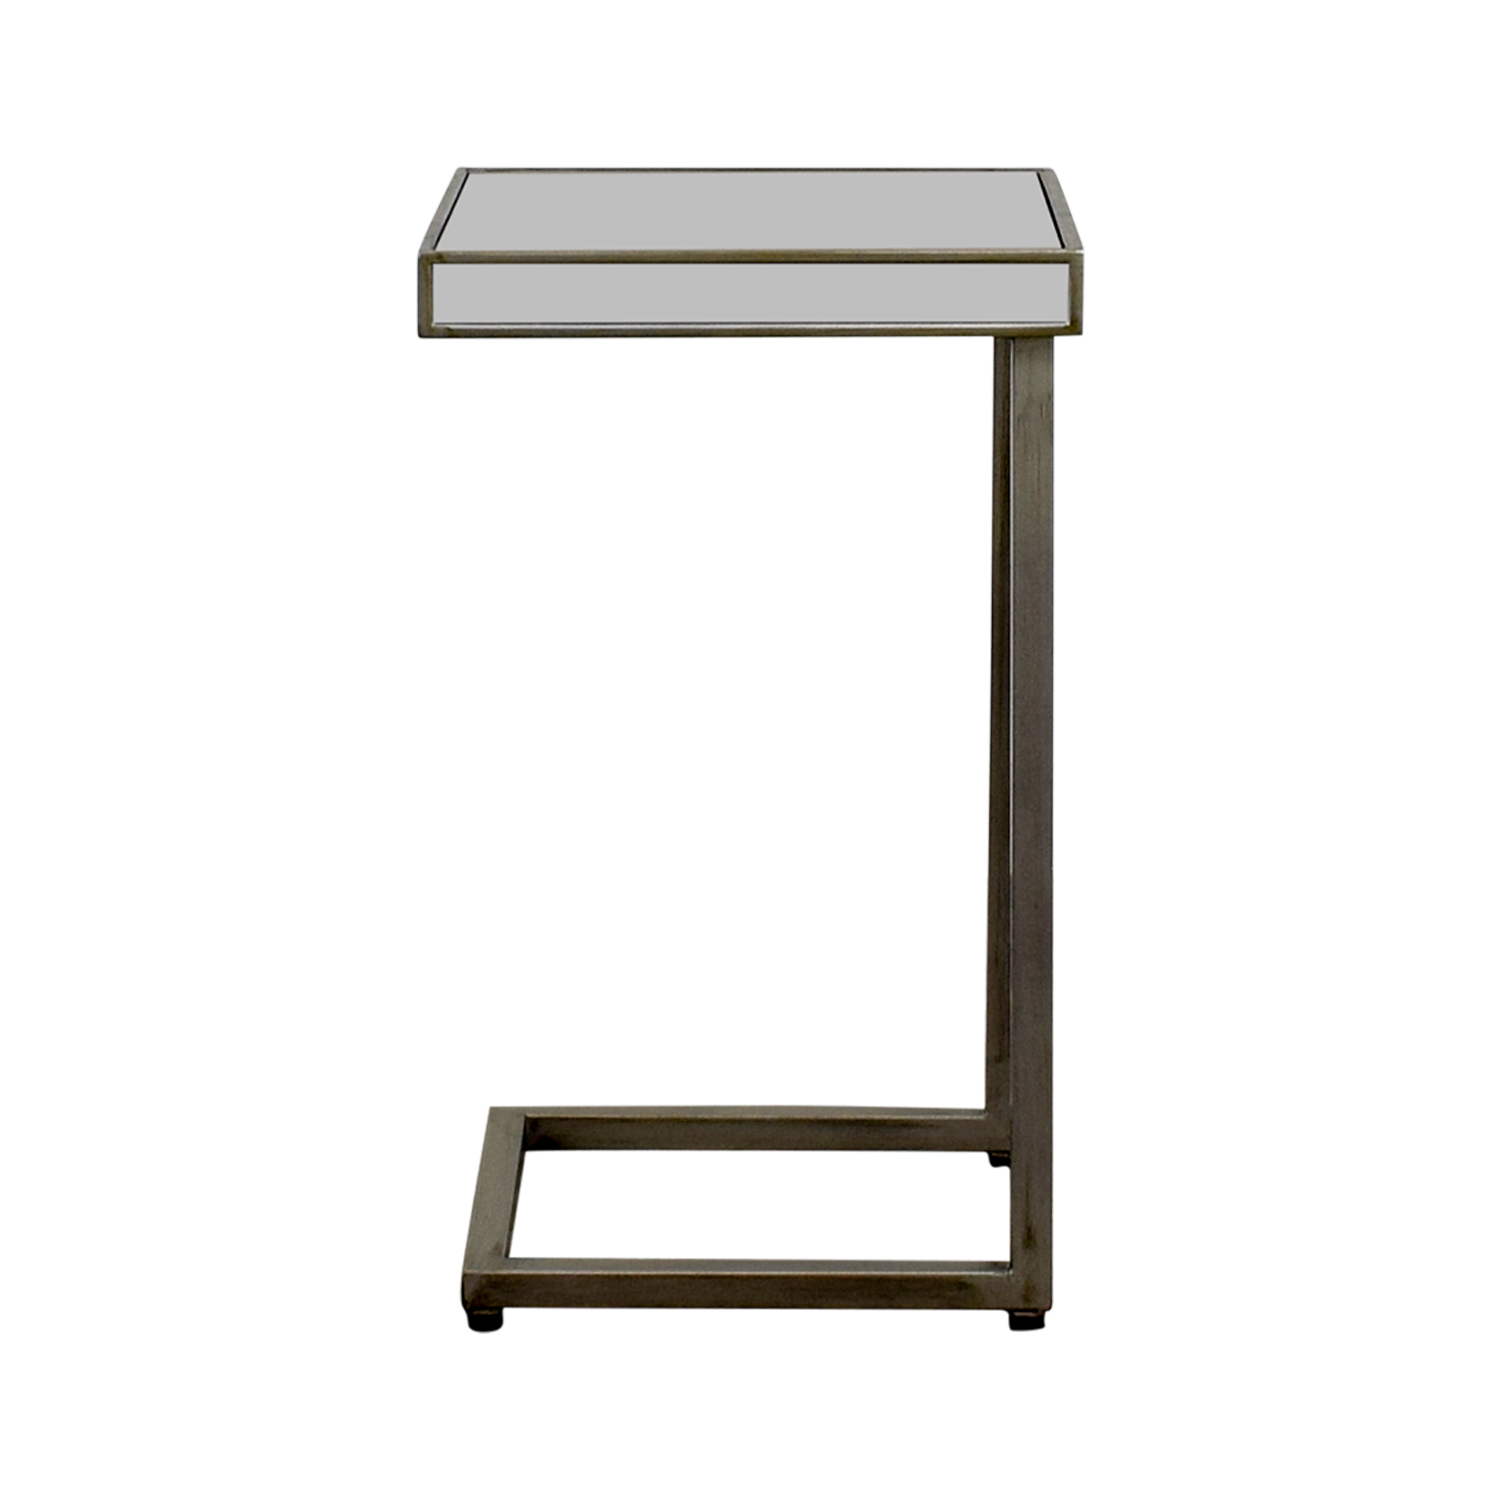 Pier 1 Imports Pier 1 Imports Hayworth Silver C-Table in Mirror on sale